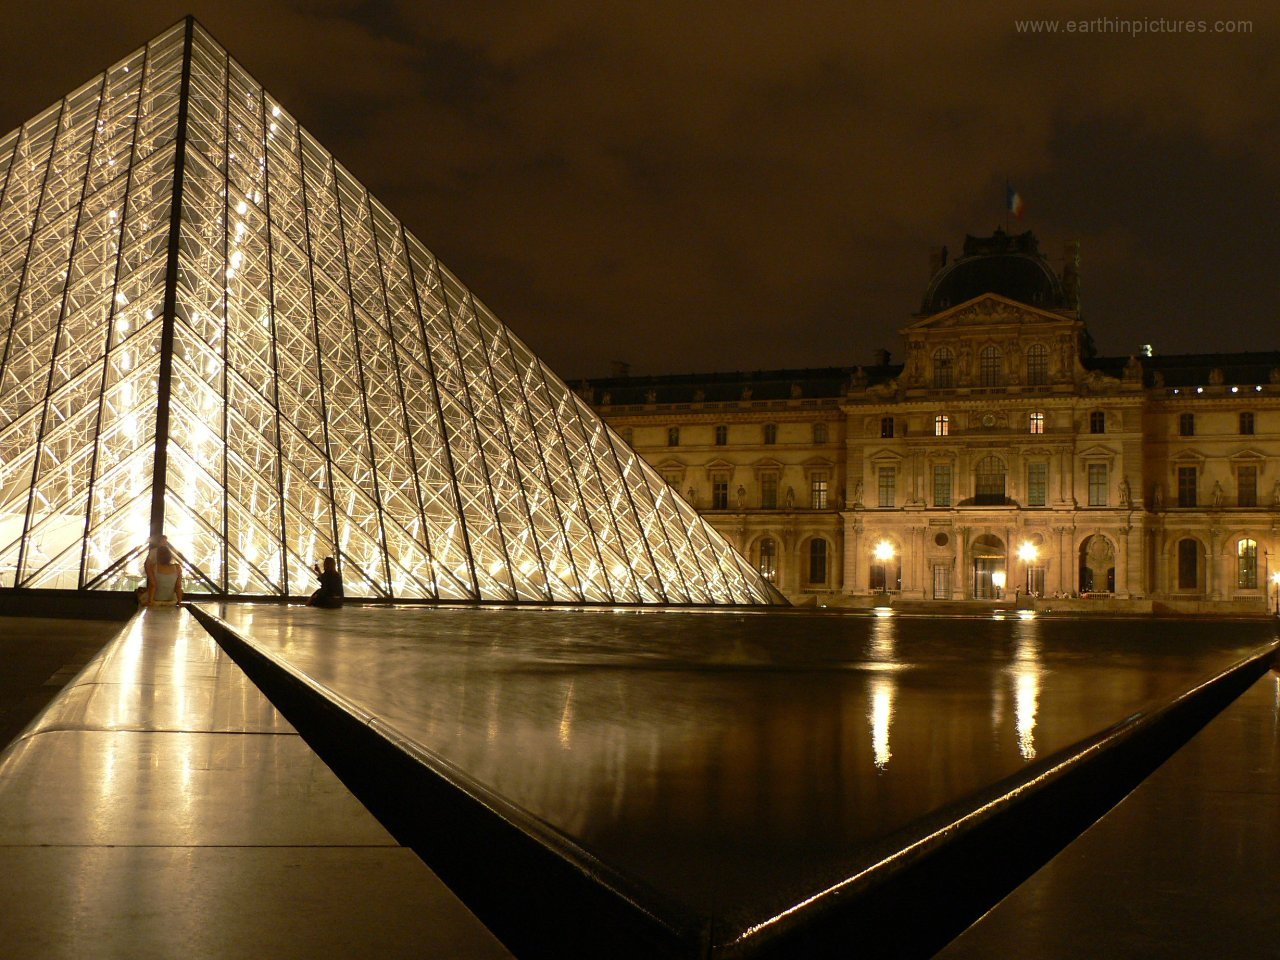 Louvre at night ( 1280x960 )